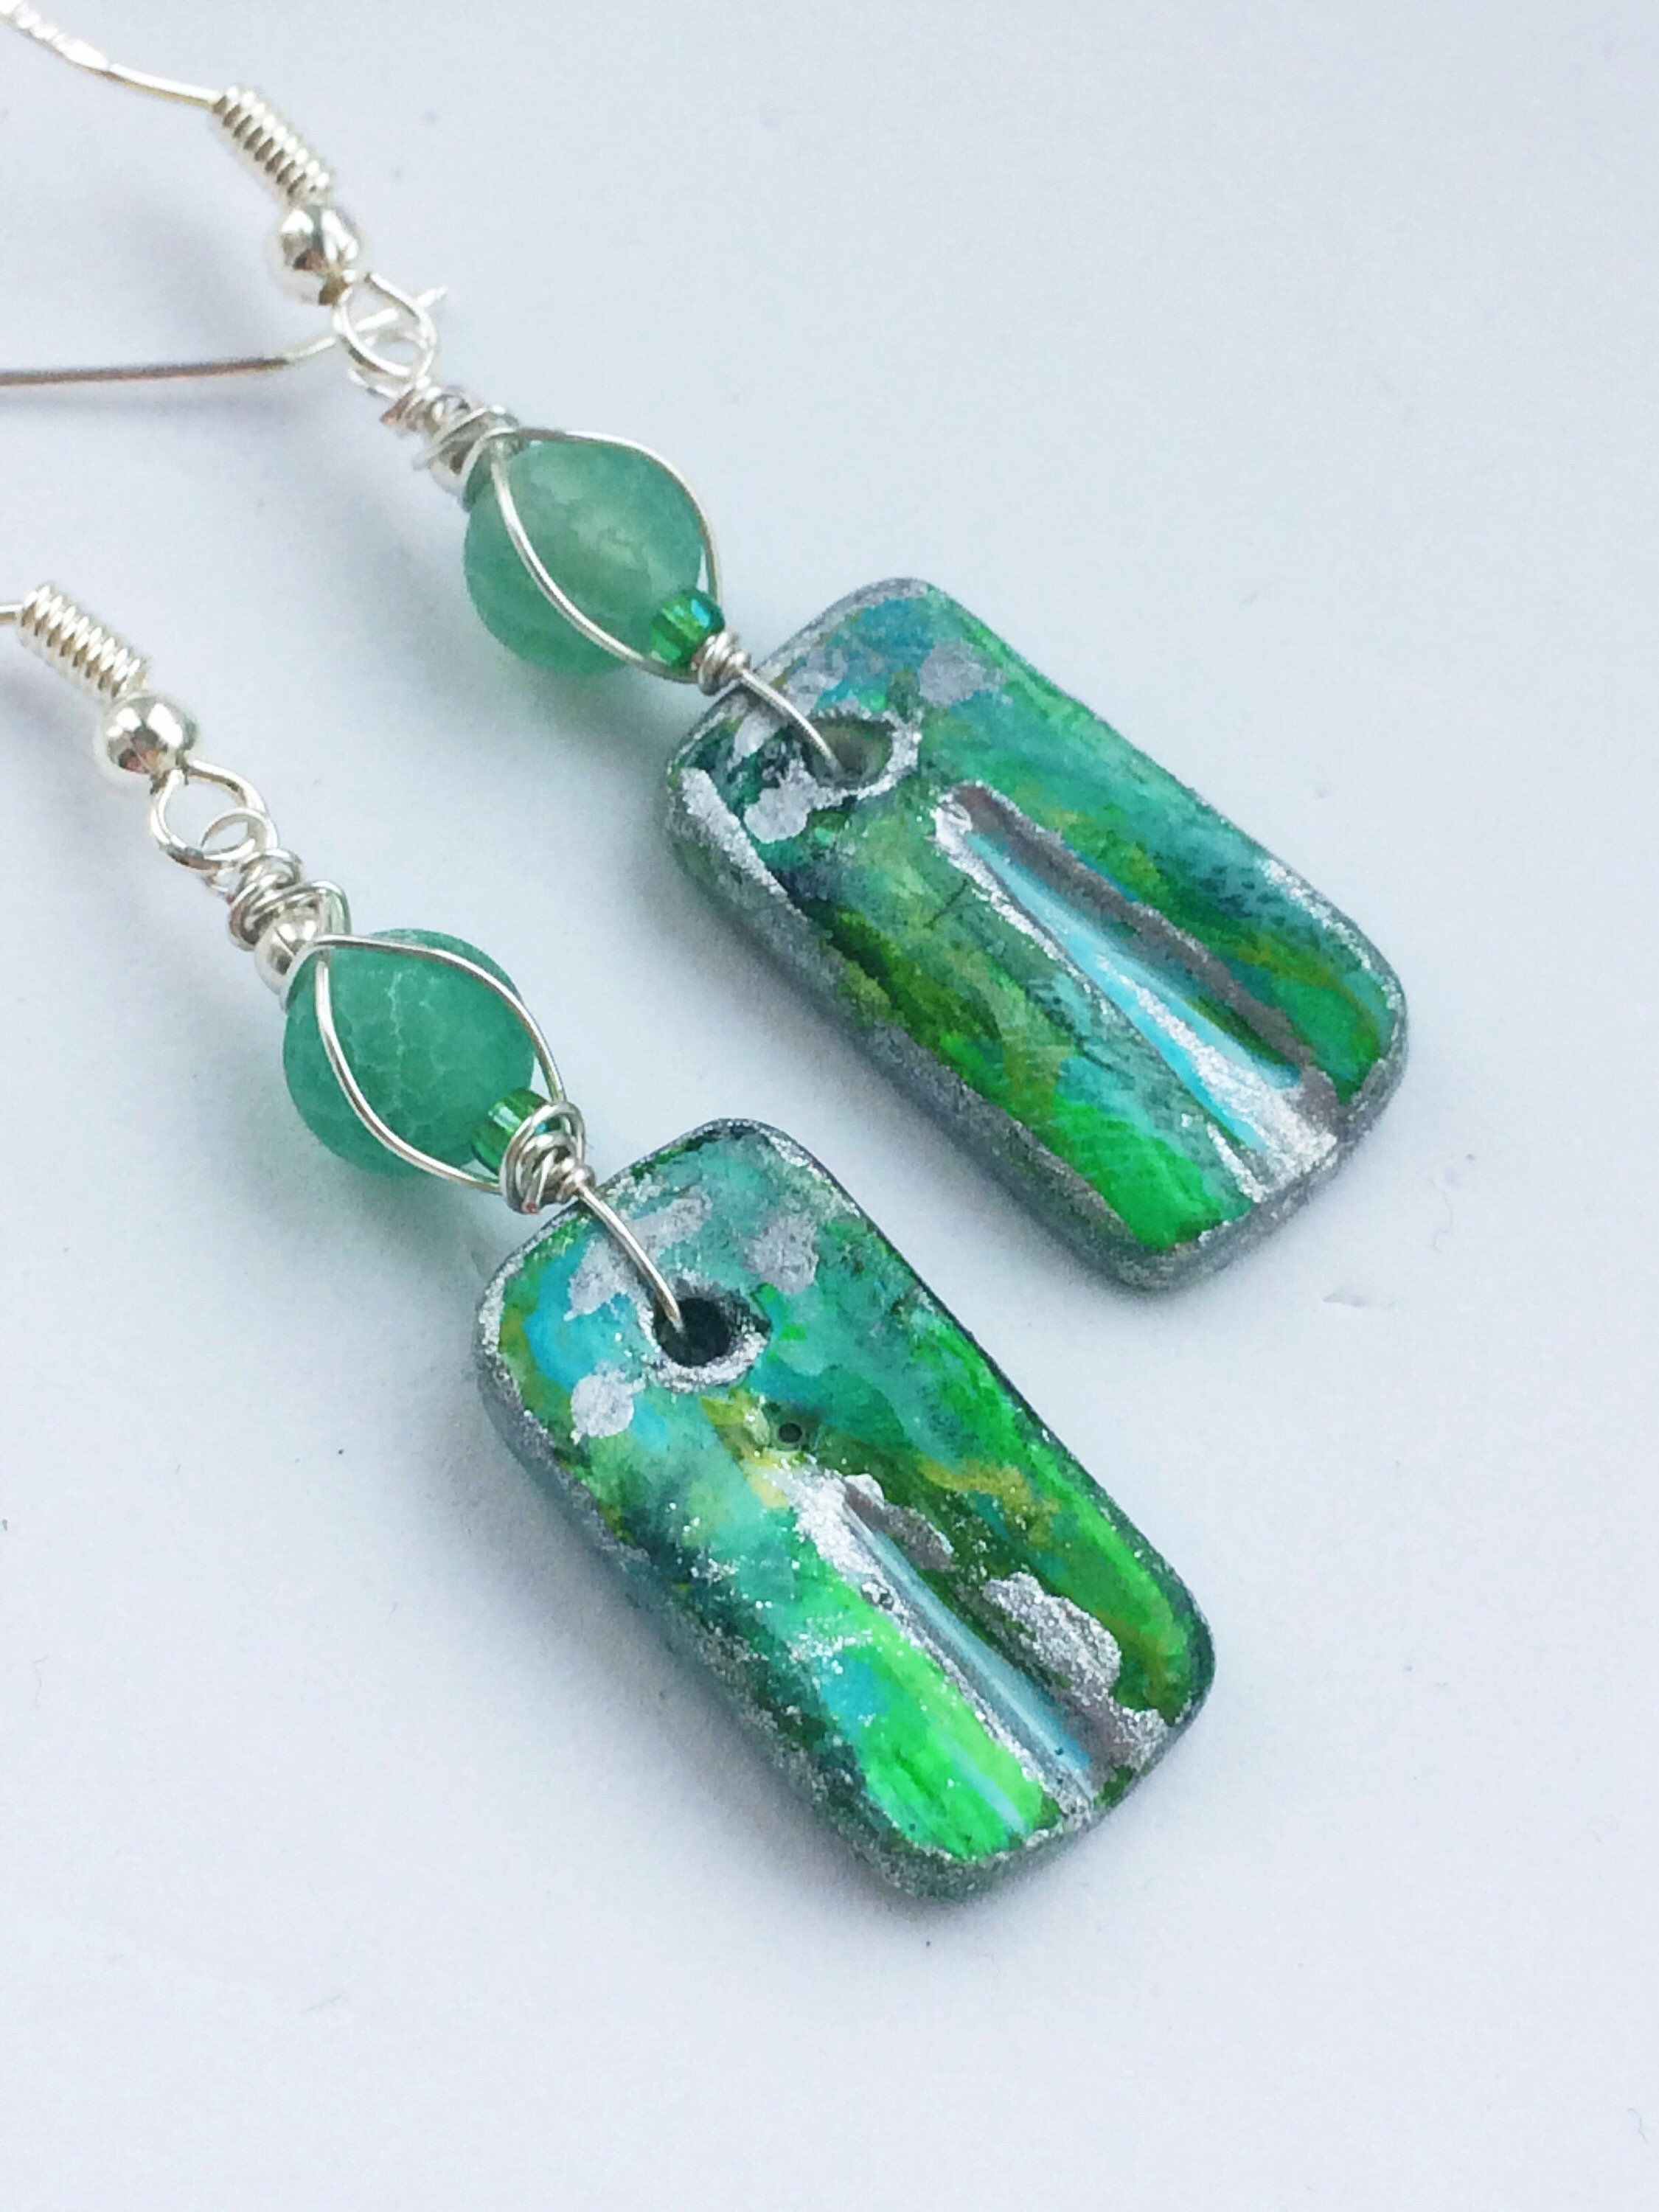 Unusual Drop Earrings Fine Jewellery With Agate Gemstones Green Turquoise Wire Wrap Sterling Silver Contemporary Uk Design